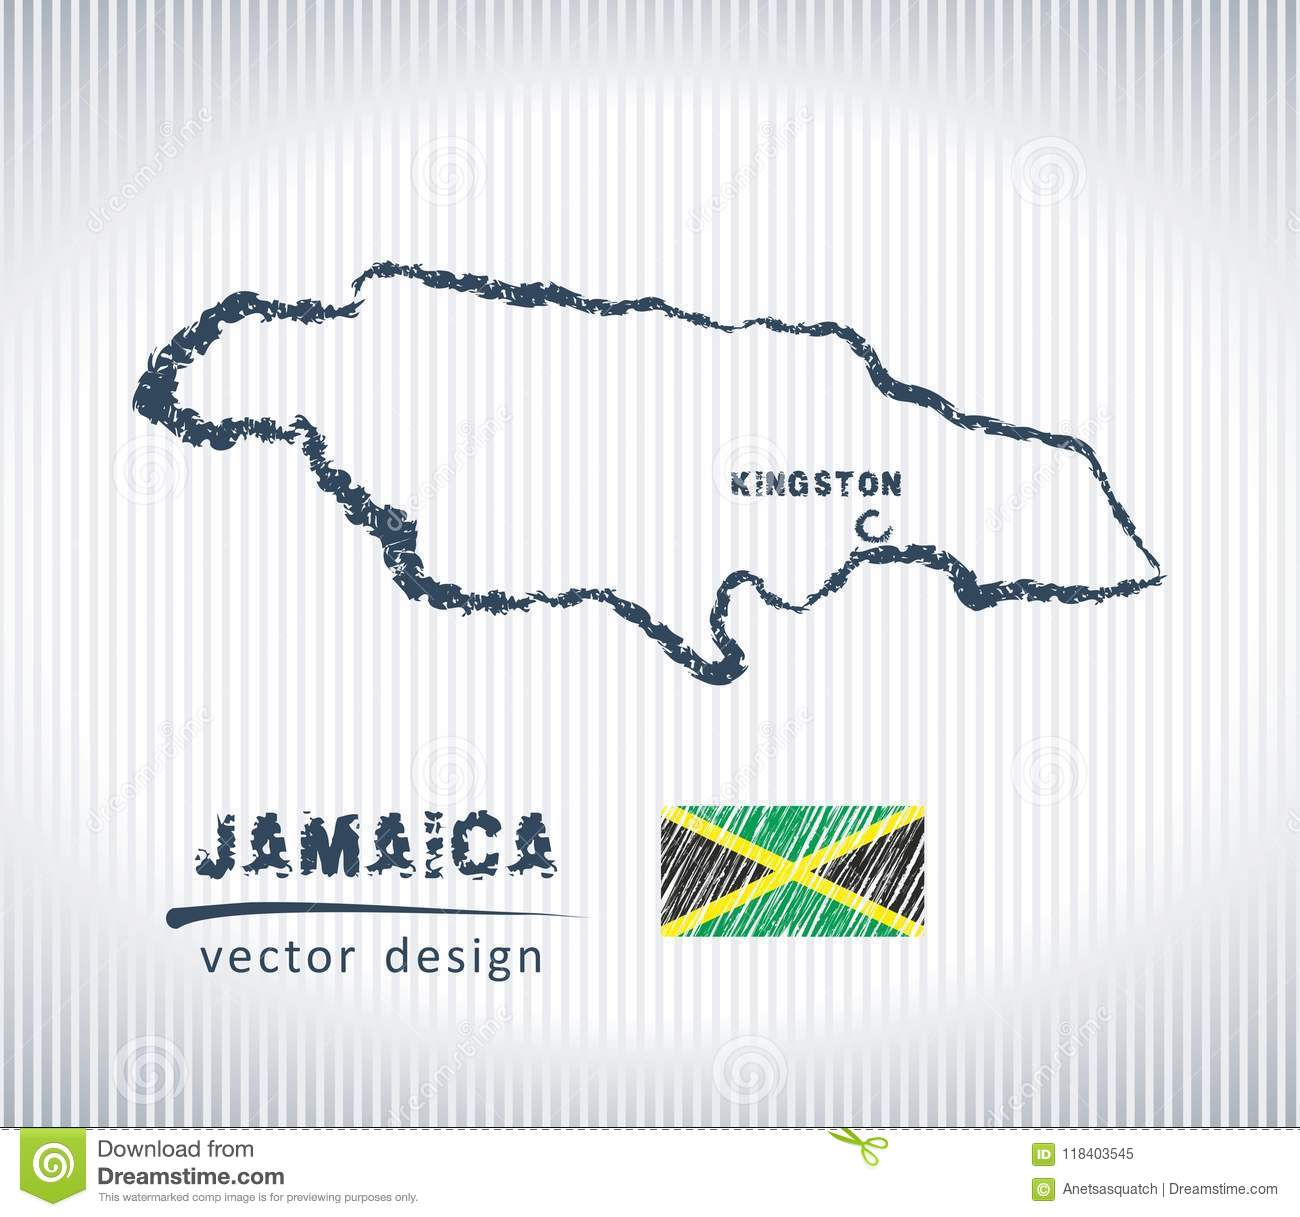 Jamaica National Vector Drawing Map On White Background ... on map of colorado drawing, map of norway drawing, map of mexico drawing, map of india drawing, map of greece drawing, map of peru drawing, map of brazil drawing, map of north america drawing, map of egypt drawing, map of ireland drawing, map of guyana drawing, map of singapore drawing, map of arizona drawing, map of fiji drawing, map of iraq drawing, map of world drawing, map of africa drawing, map of germany drawing, map of new york drawing, map of japan drawing,